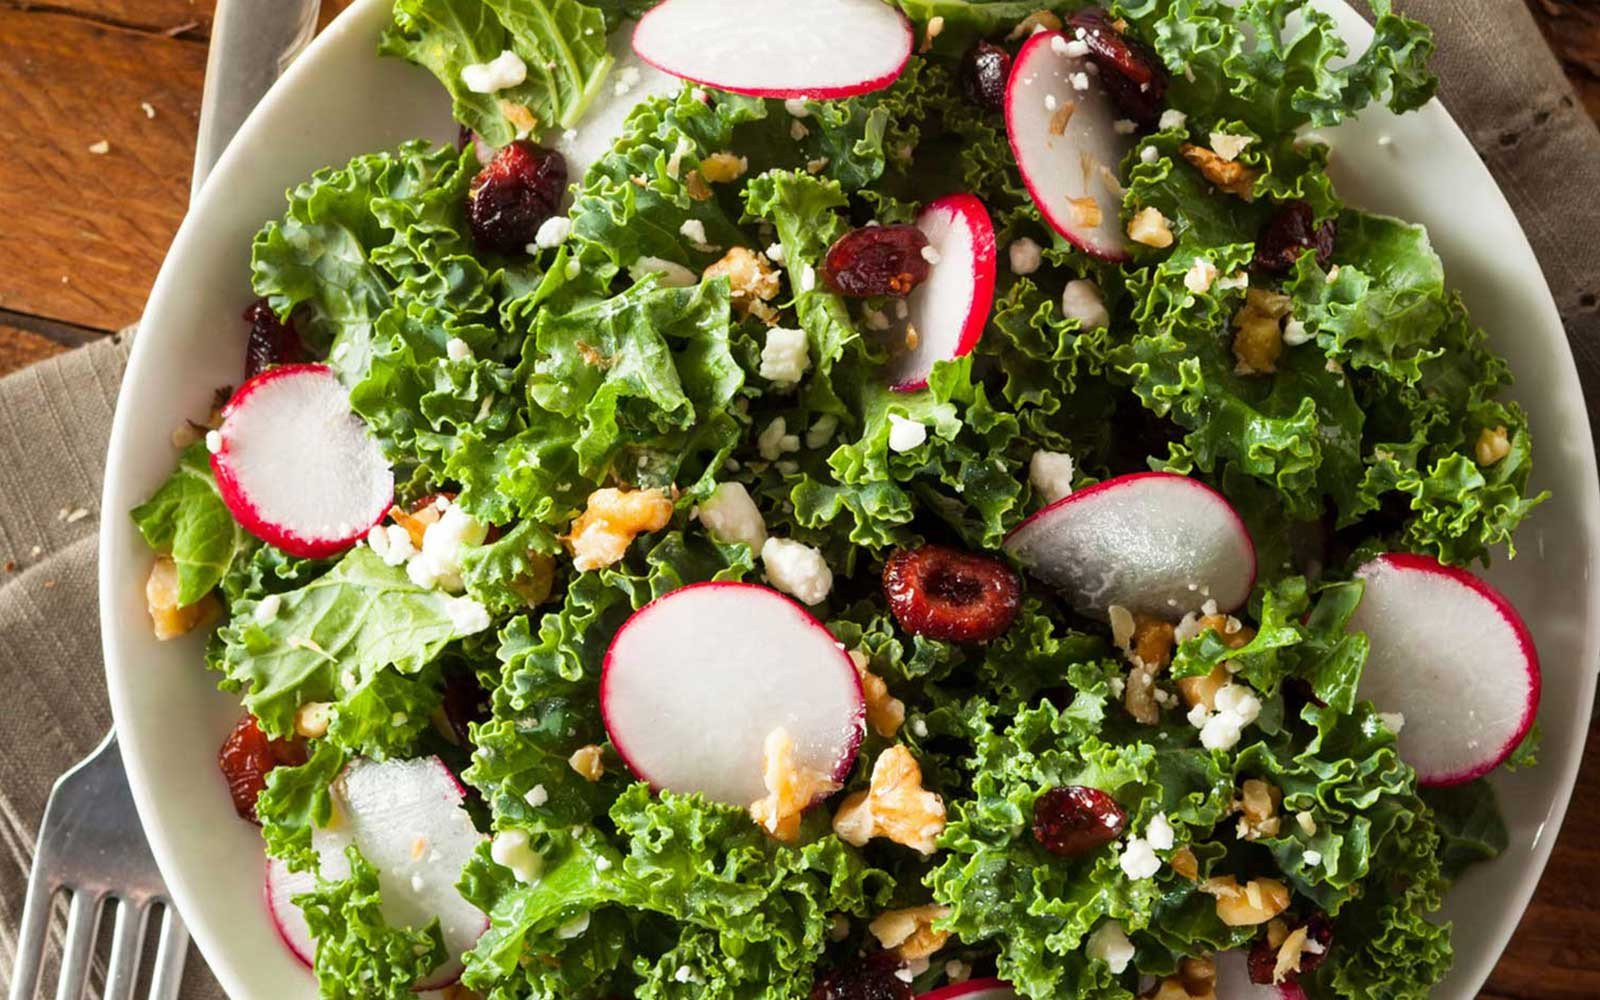 Colourful Kale Superfood Salad with Parmesan Garlic Protein Crackers